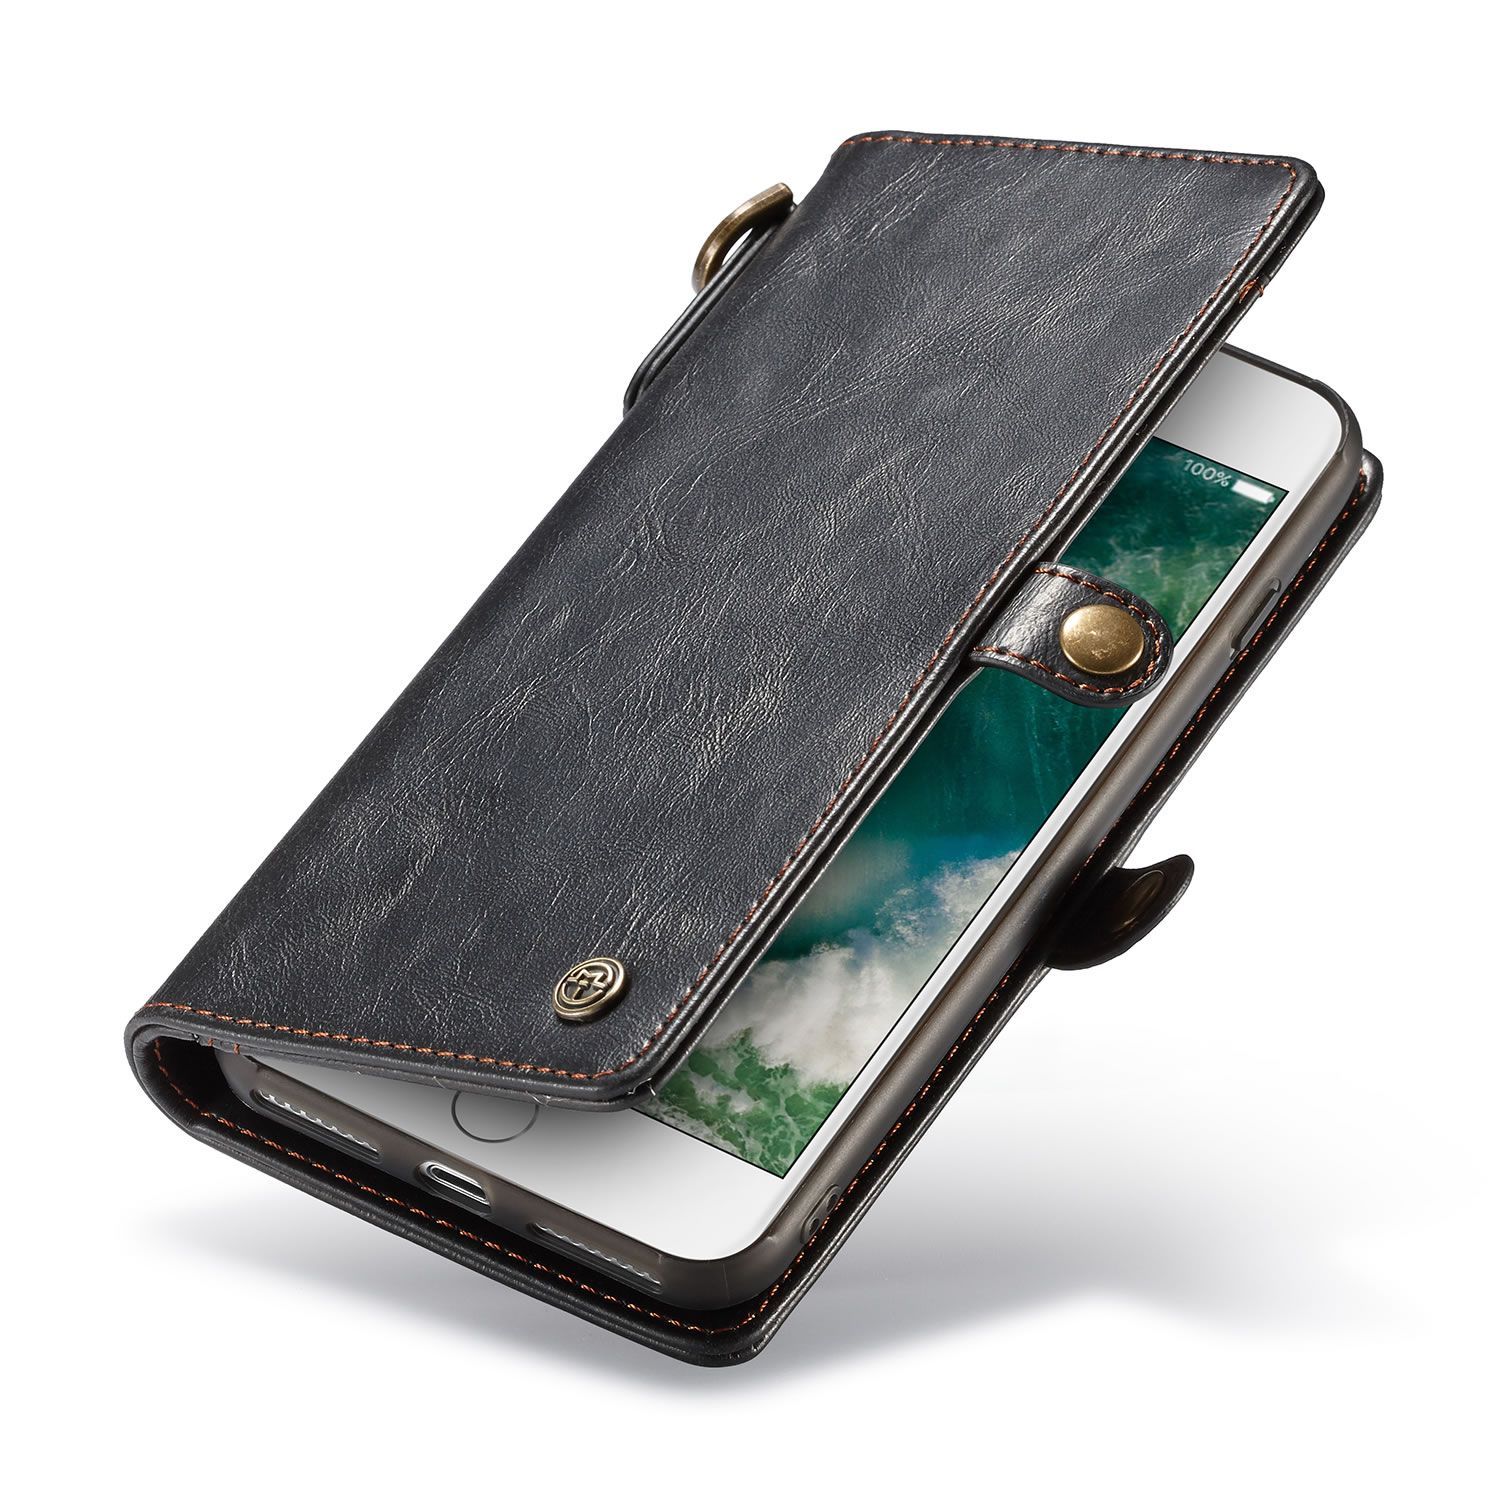 Caseme iphone 8 plus leather wallet case with wrist strap